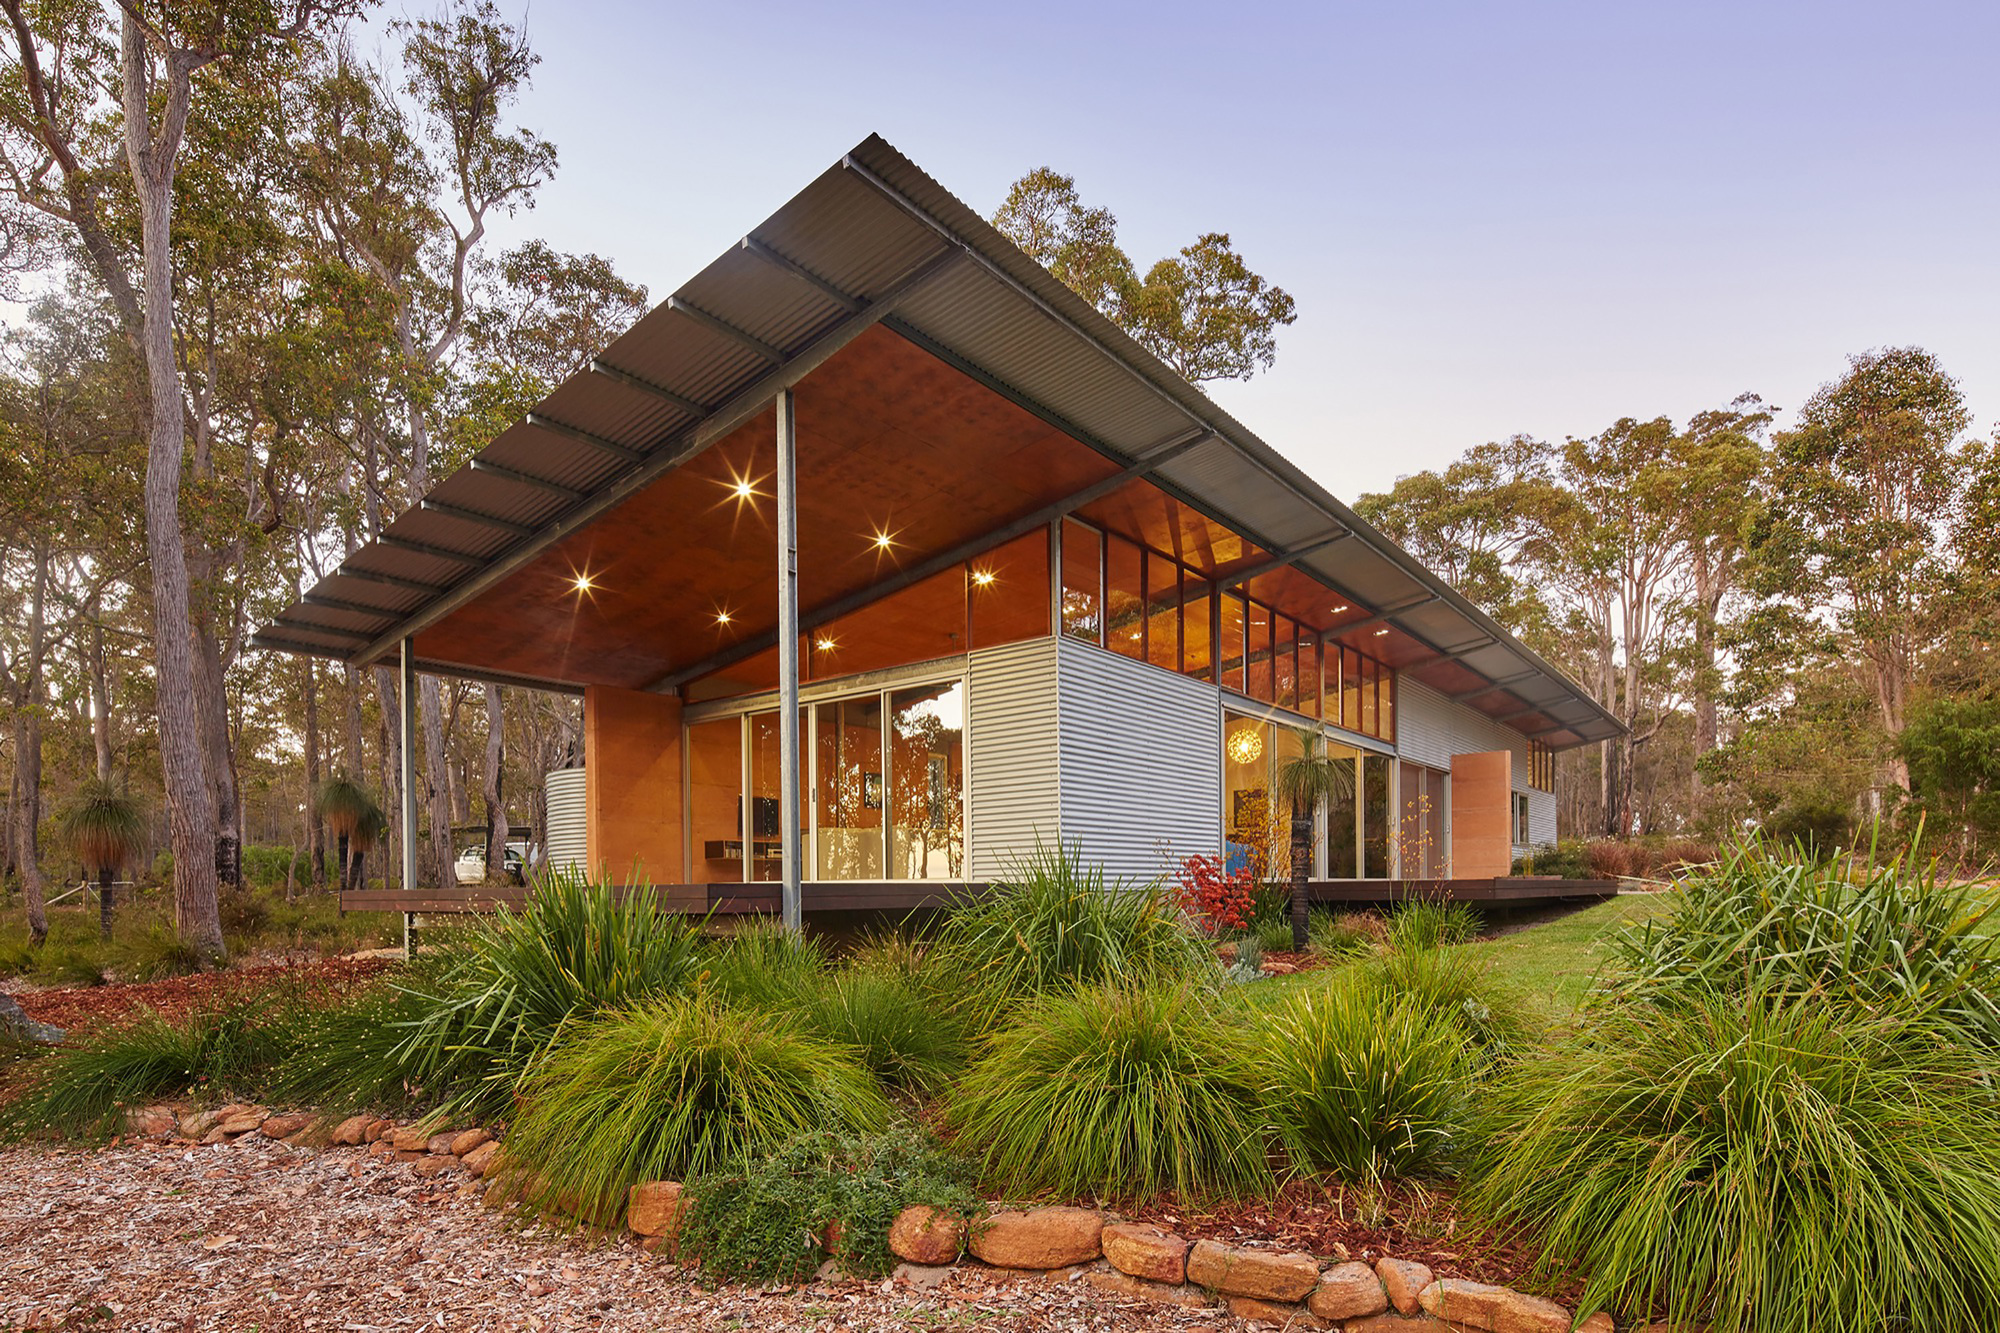 Beautiful Bush House By Archterra Architects (via Lunchbox Architect)